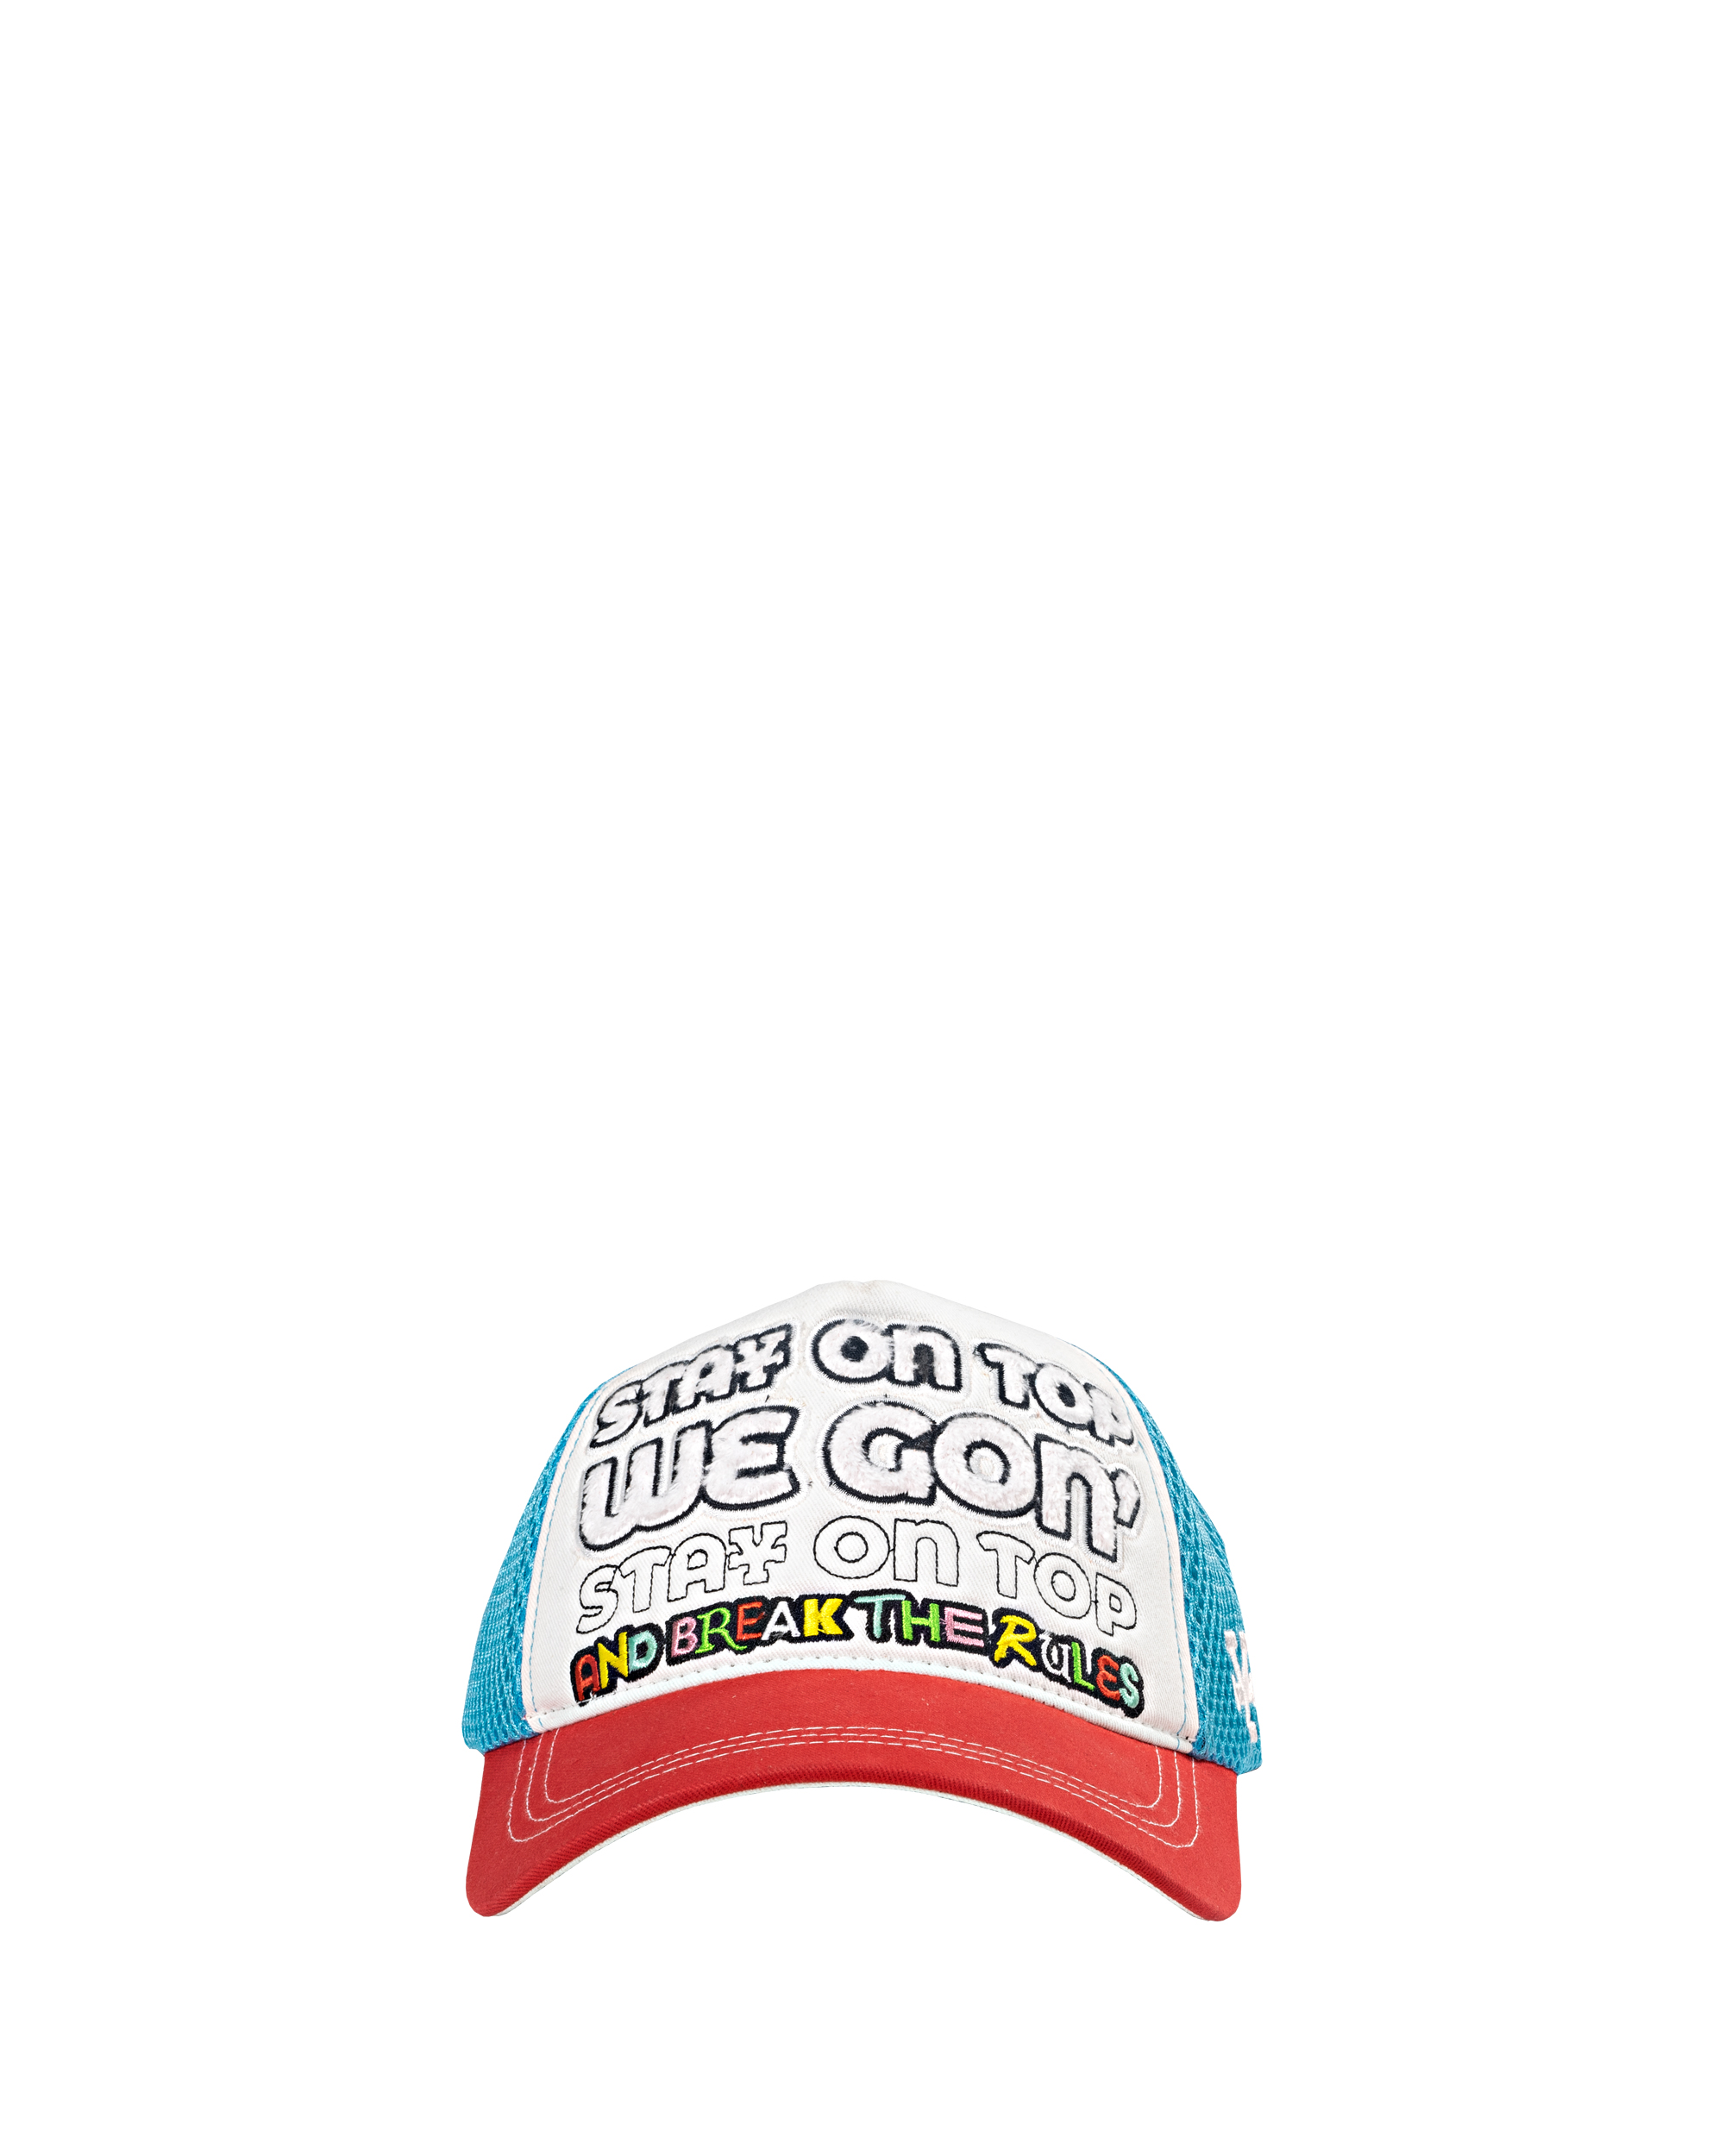 DirtyCoins On Top Trucker Hat - Tricolor